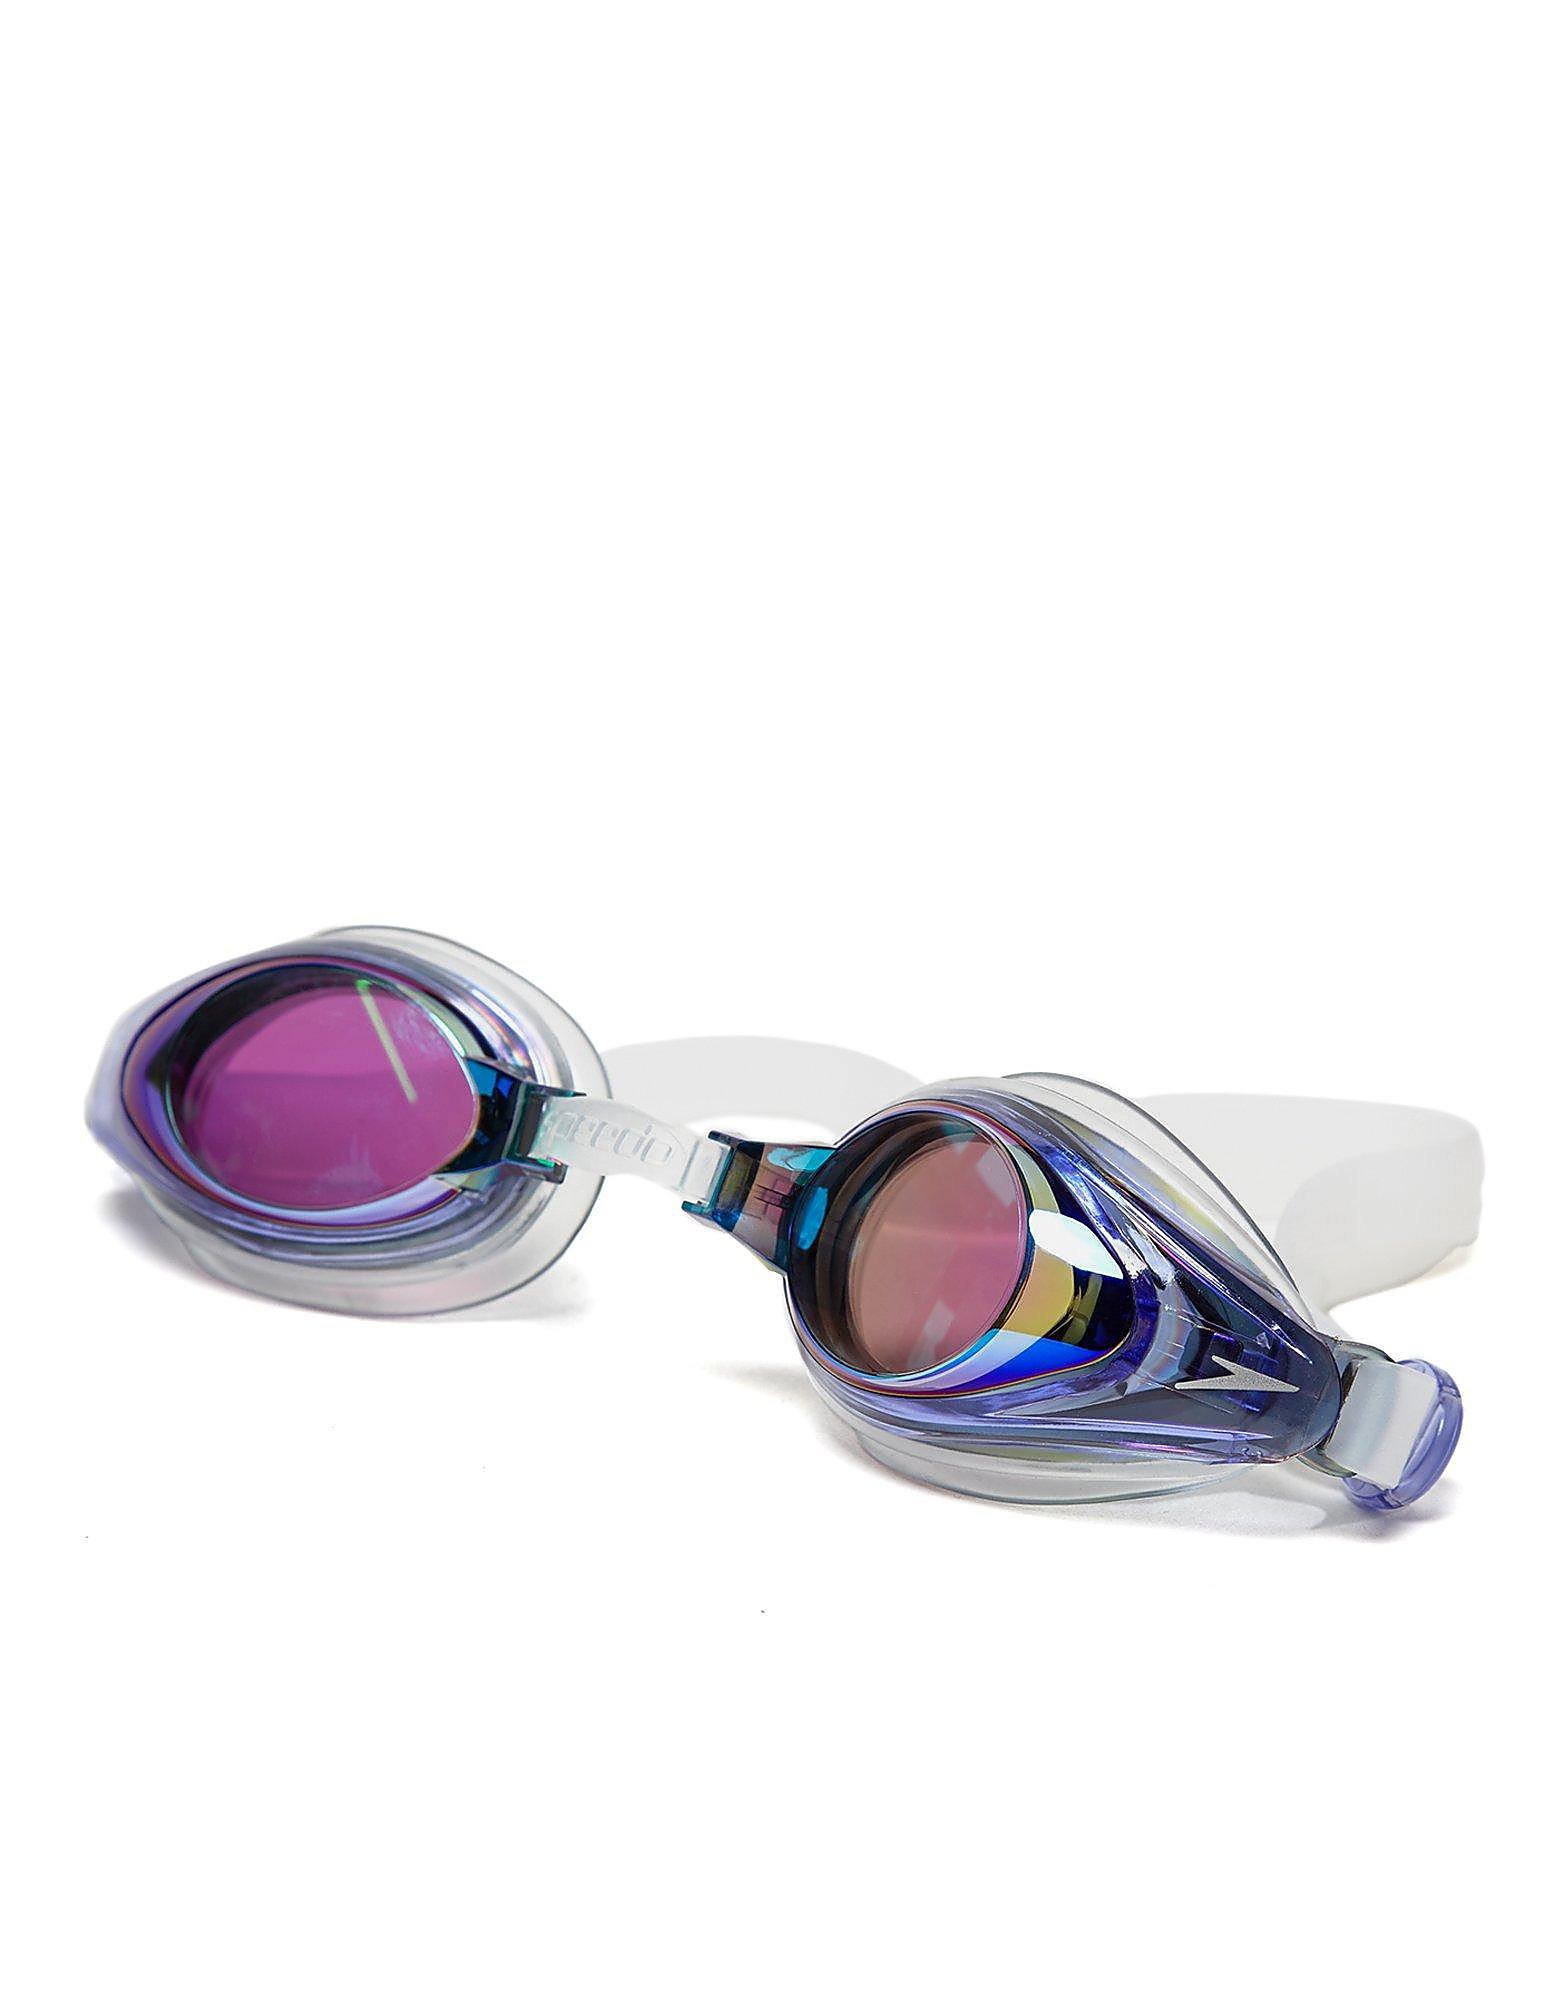 Speedo Mariner Mirror Swimming Goggles